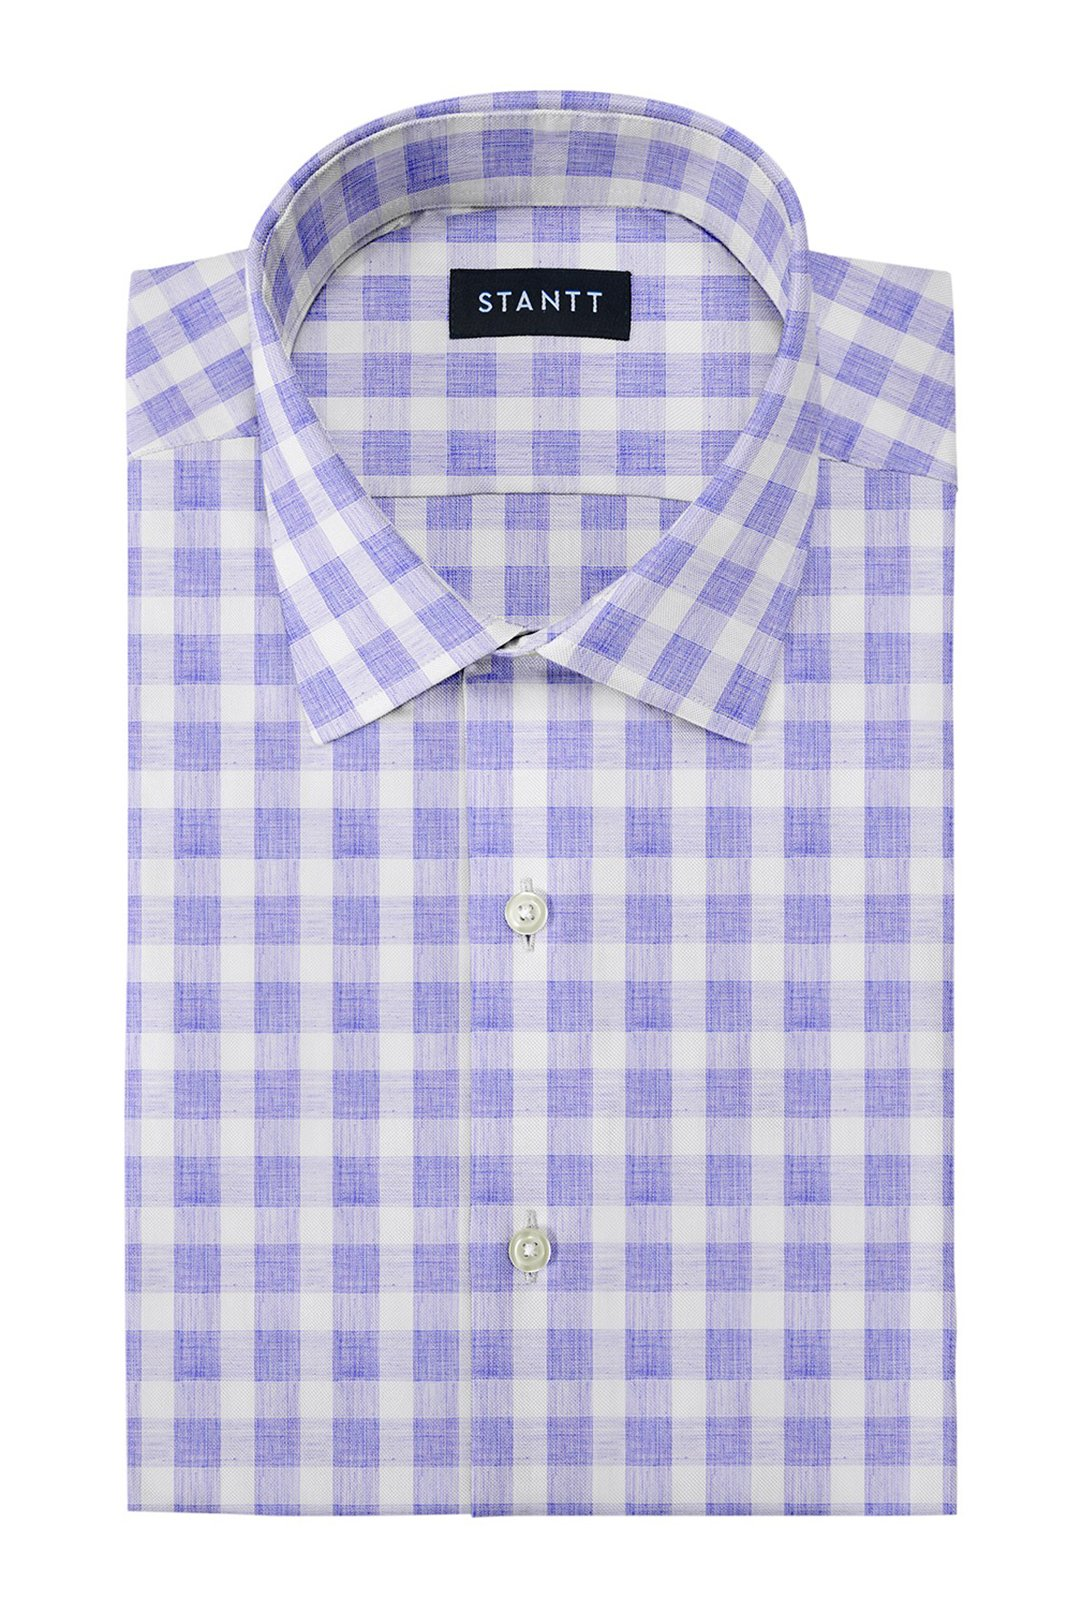 Heather Blue Buffalo Check: Modified-Spread Collar, Barrel Cuff